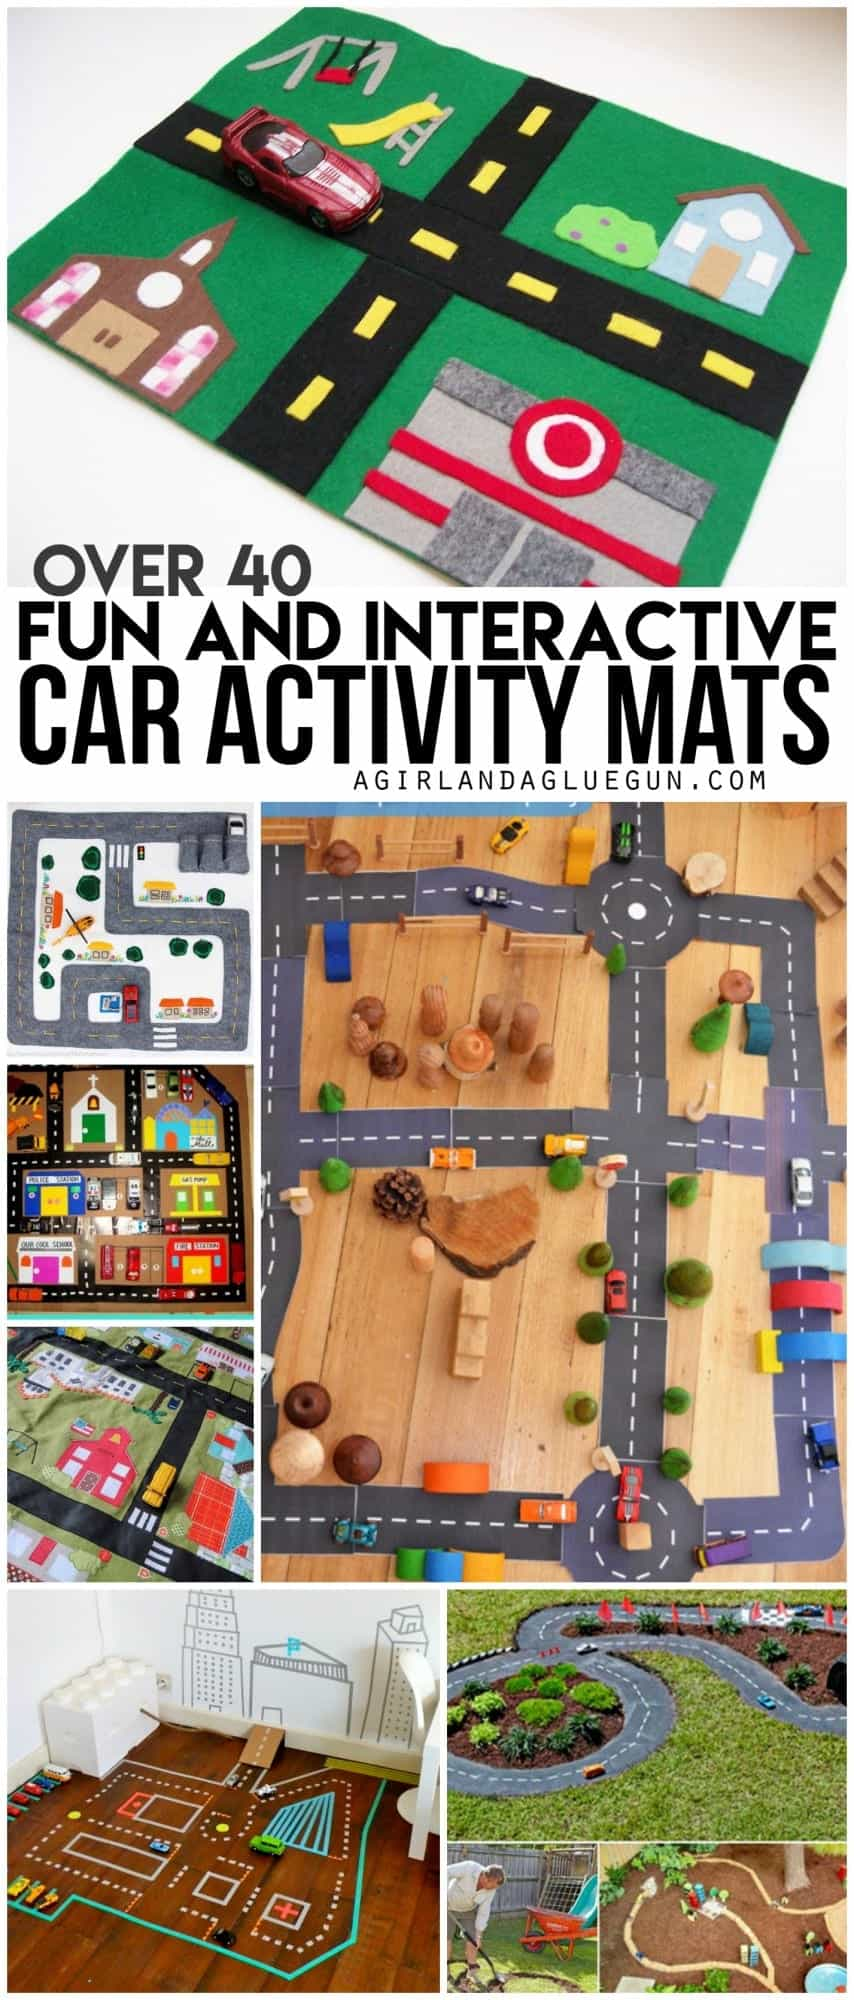 over 40 fun and interactive car activity mats --lots of awesome diy and crafts that you can make at home